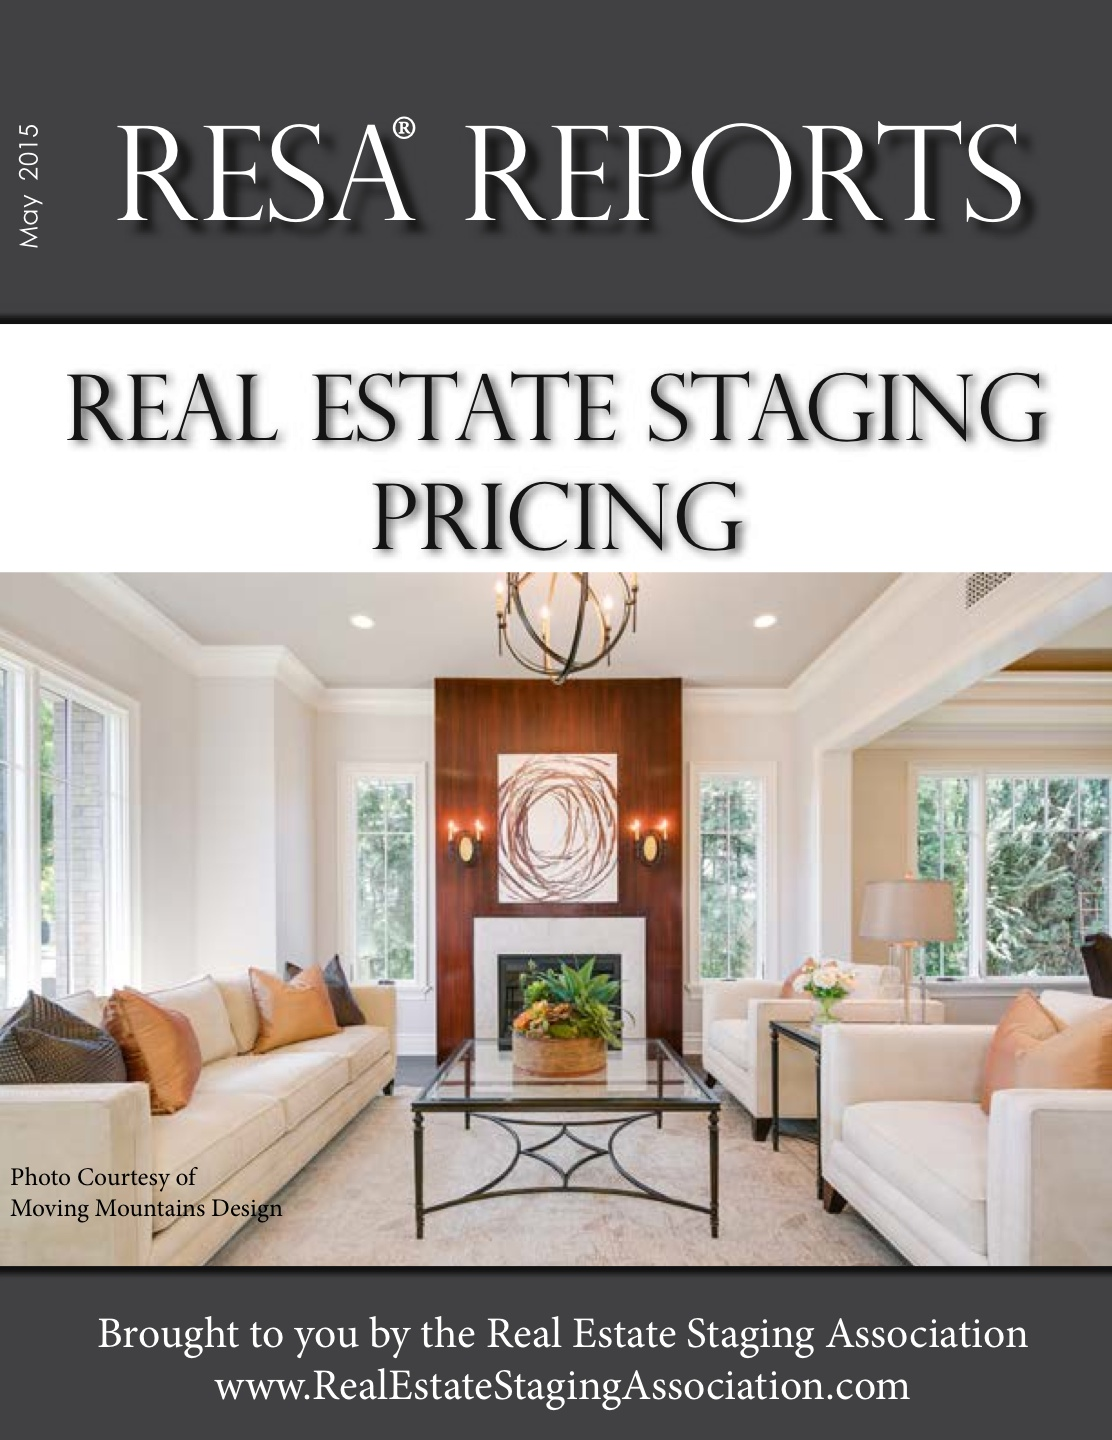 RESA Reports Pricing